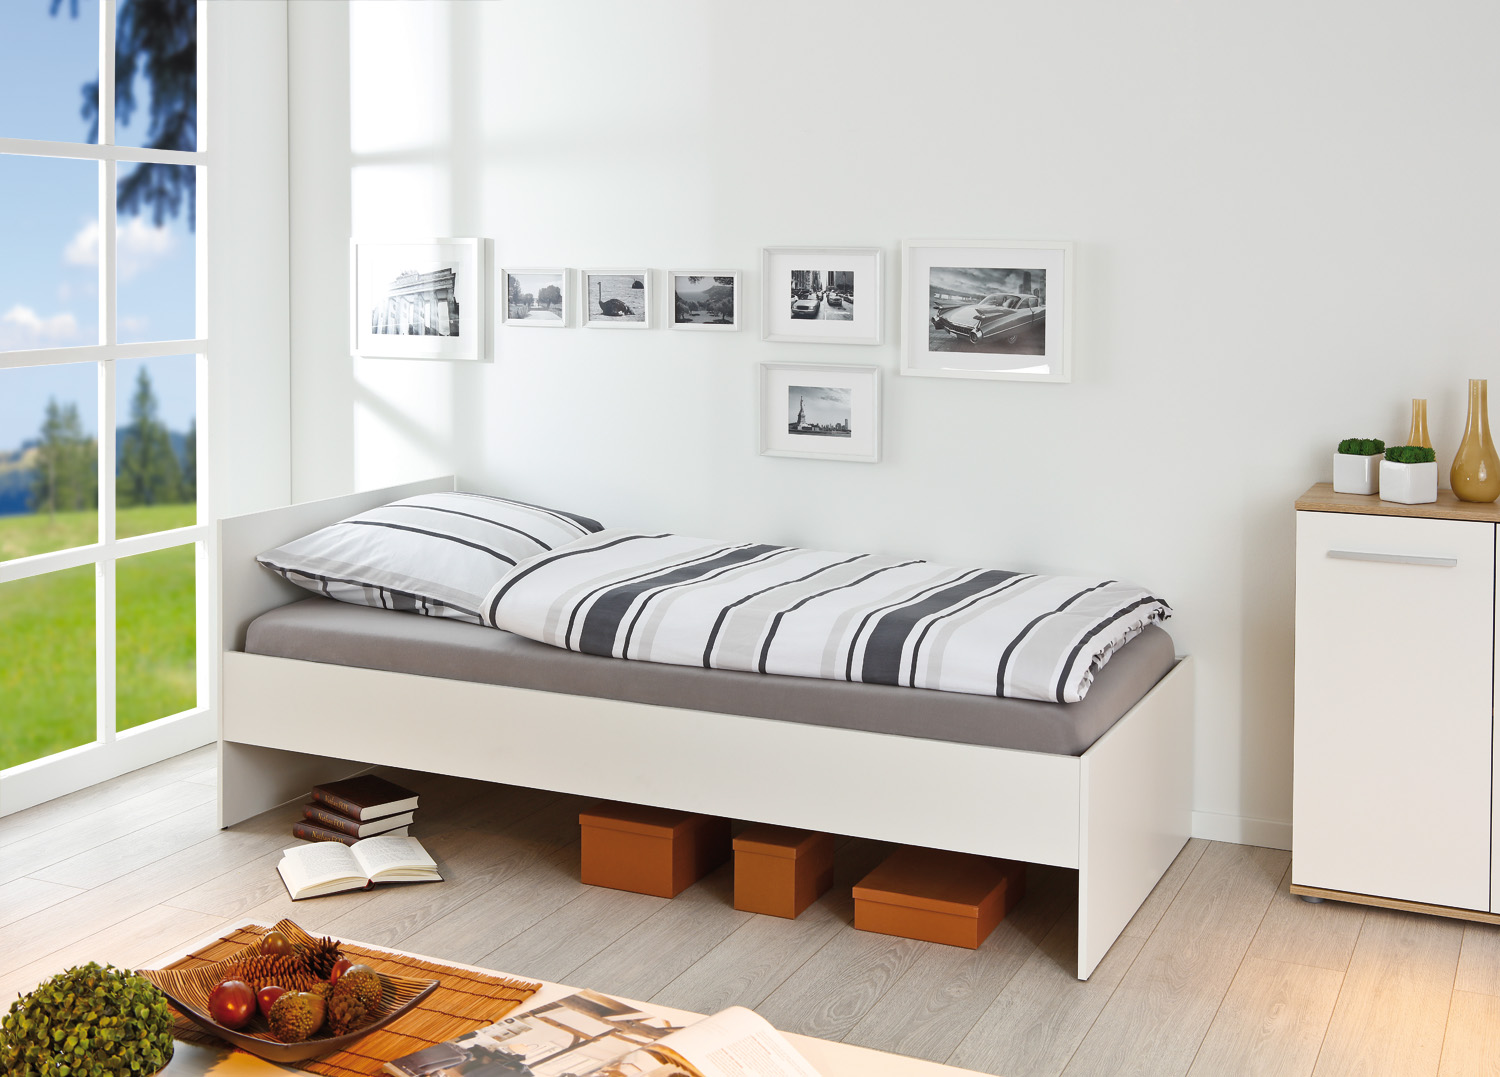 Full Size of Bett Weiß 90x200 Betten Shop Mbel Bitter Gnstige 100x200 Boxspring Test Hoch Bad Regal Sofa Grau Clinique Even Better Make Up 180x200 Modernes Mädchen Bett Bett Weiß 90x200